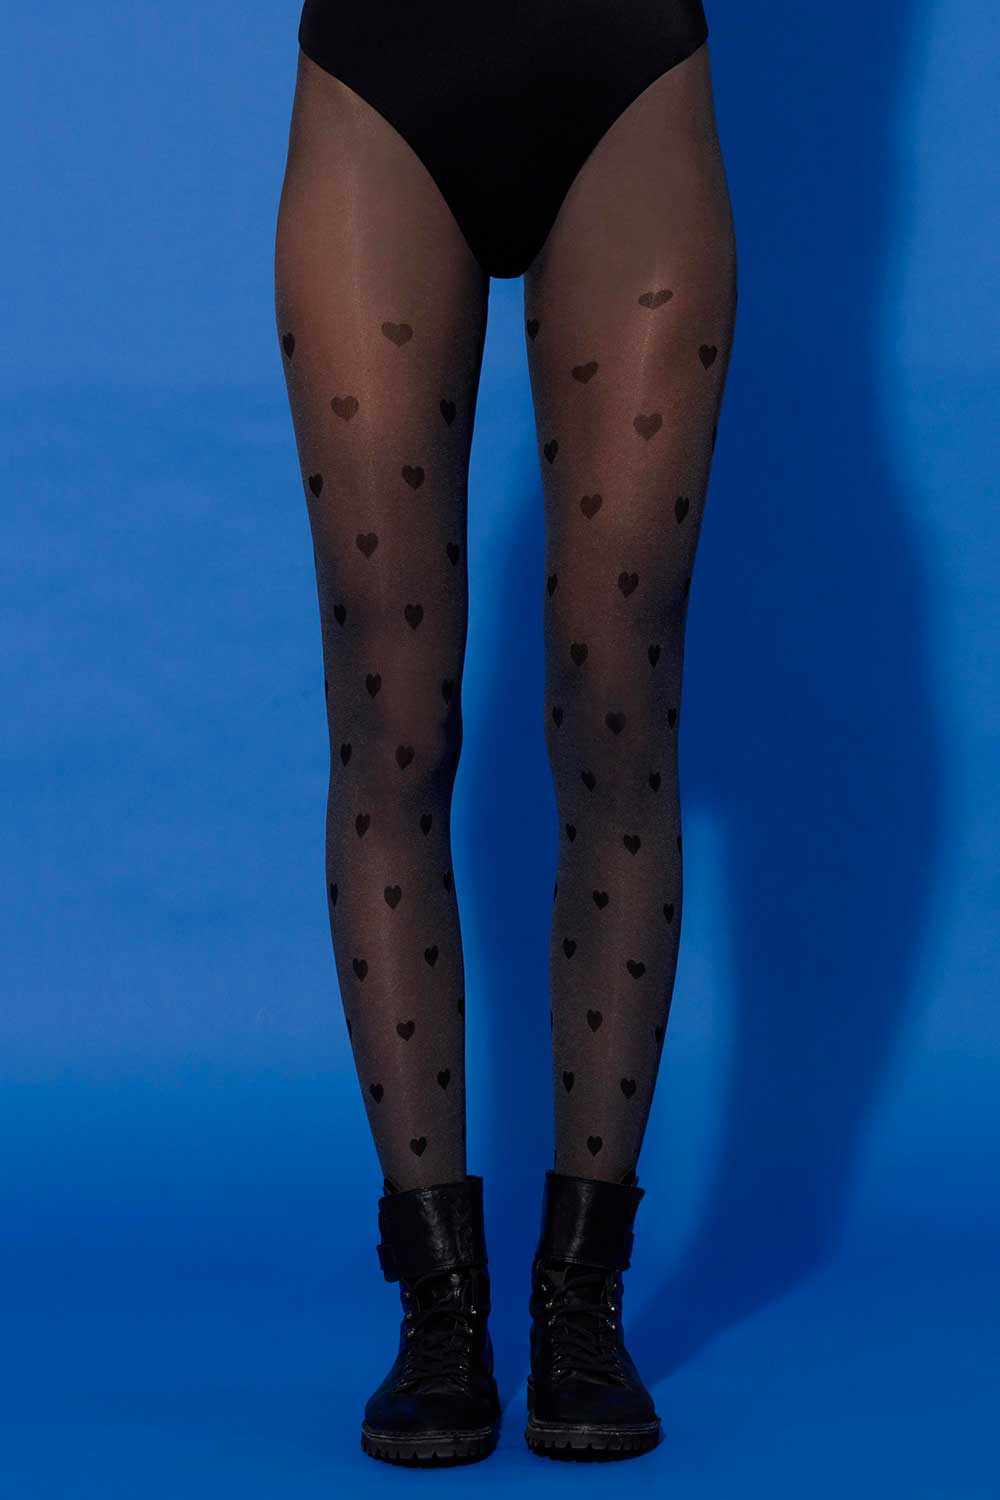 pantyhose with hearts